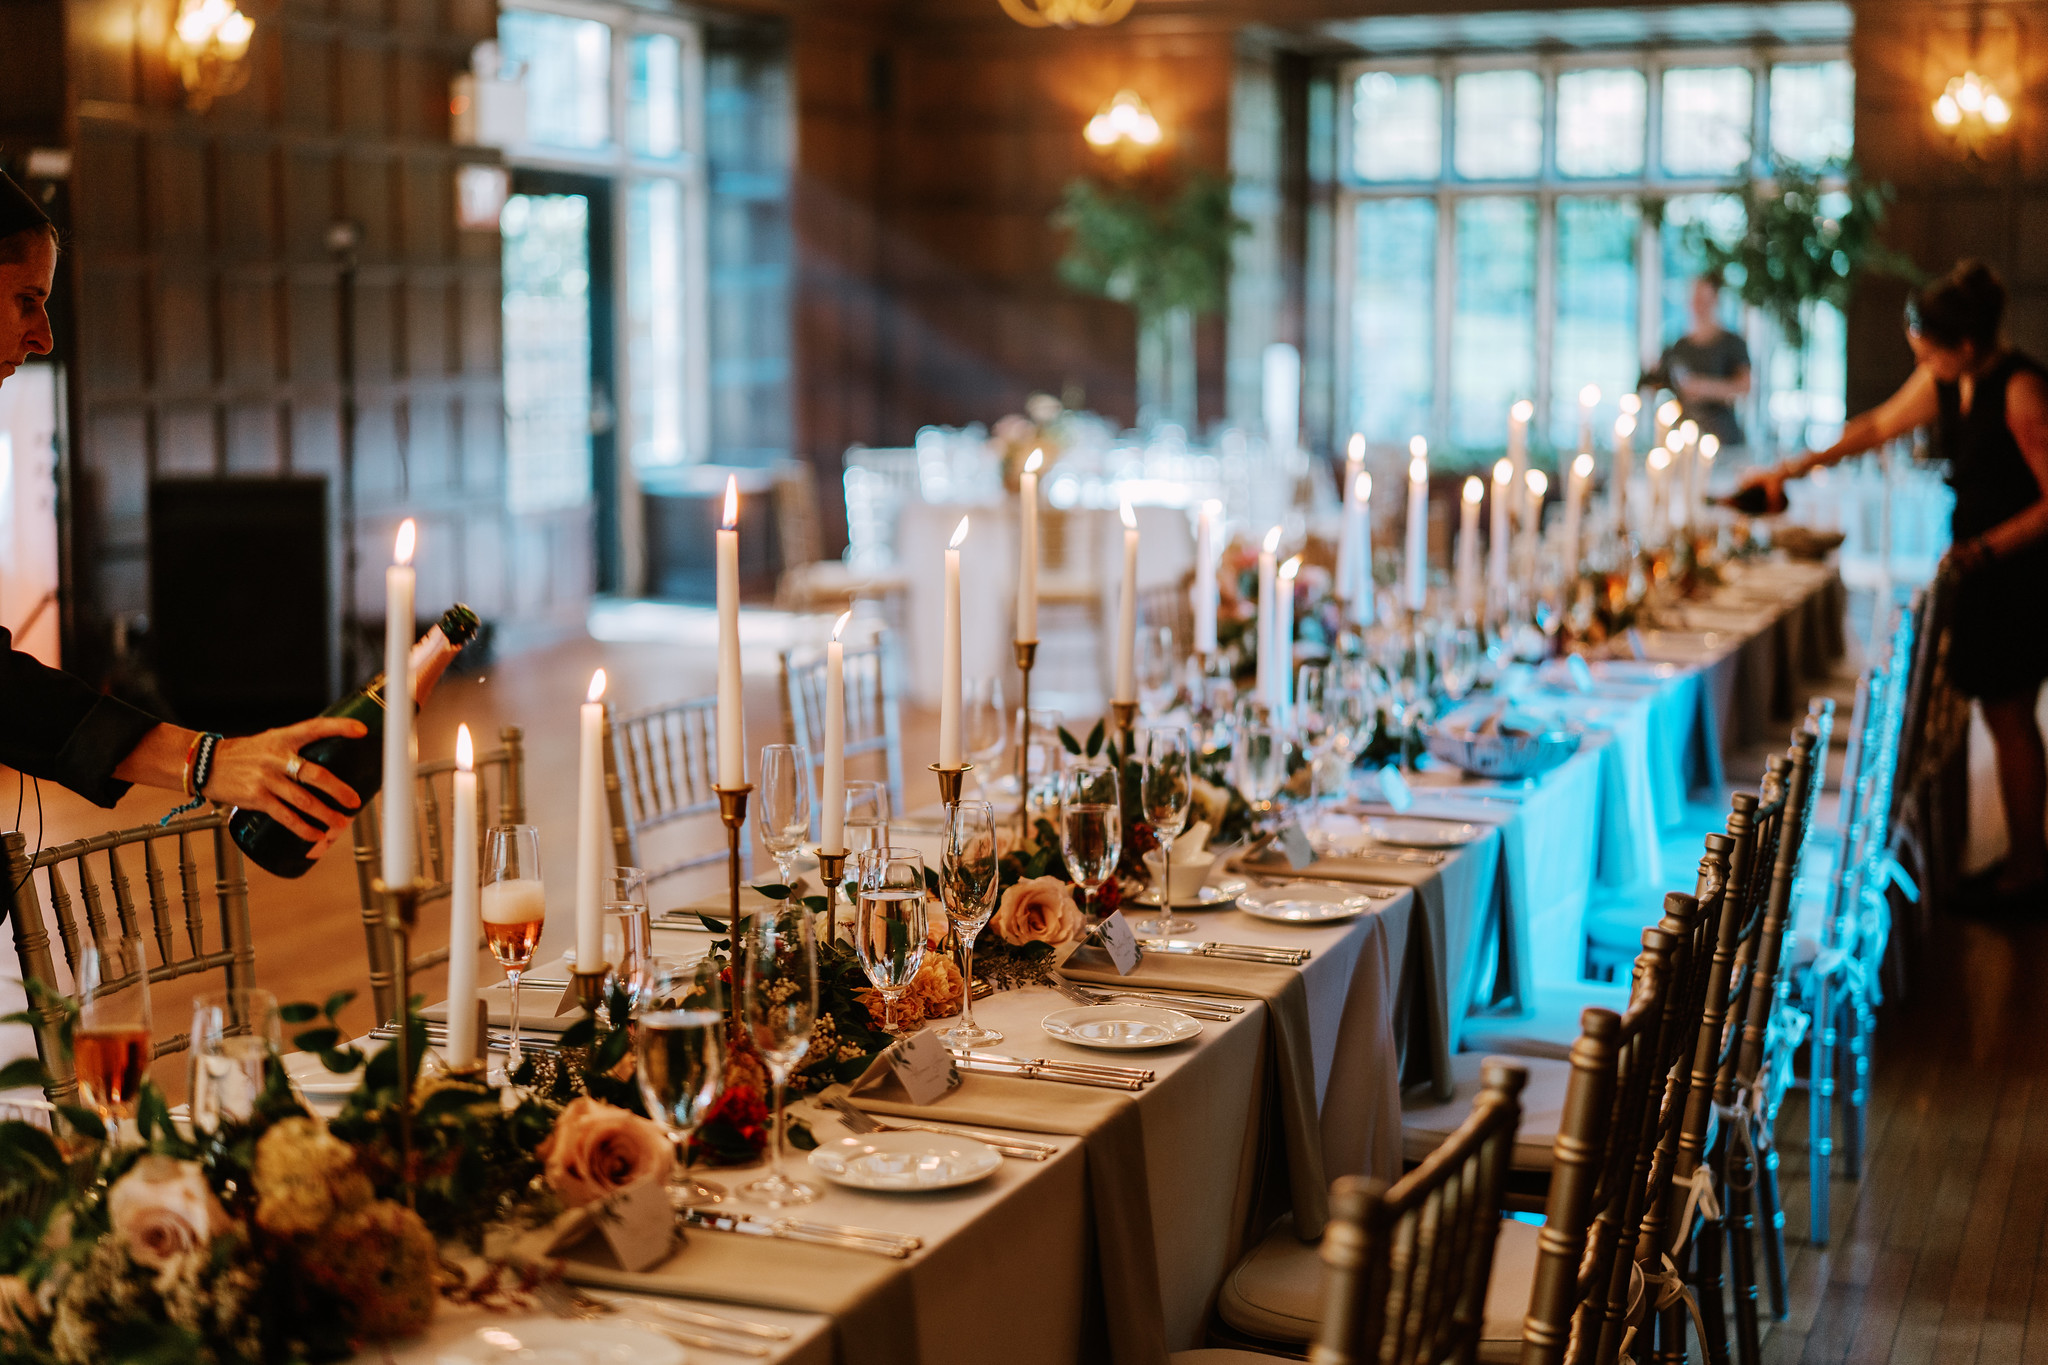 Long, elegant communal table with candle sticks, wild flowers, and wine glasses.